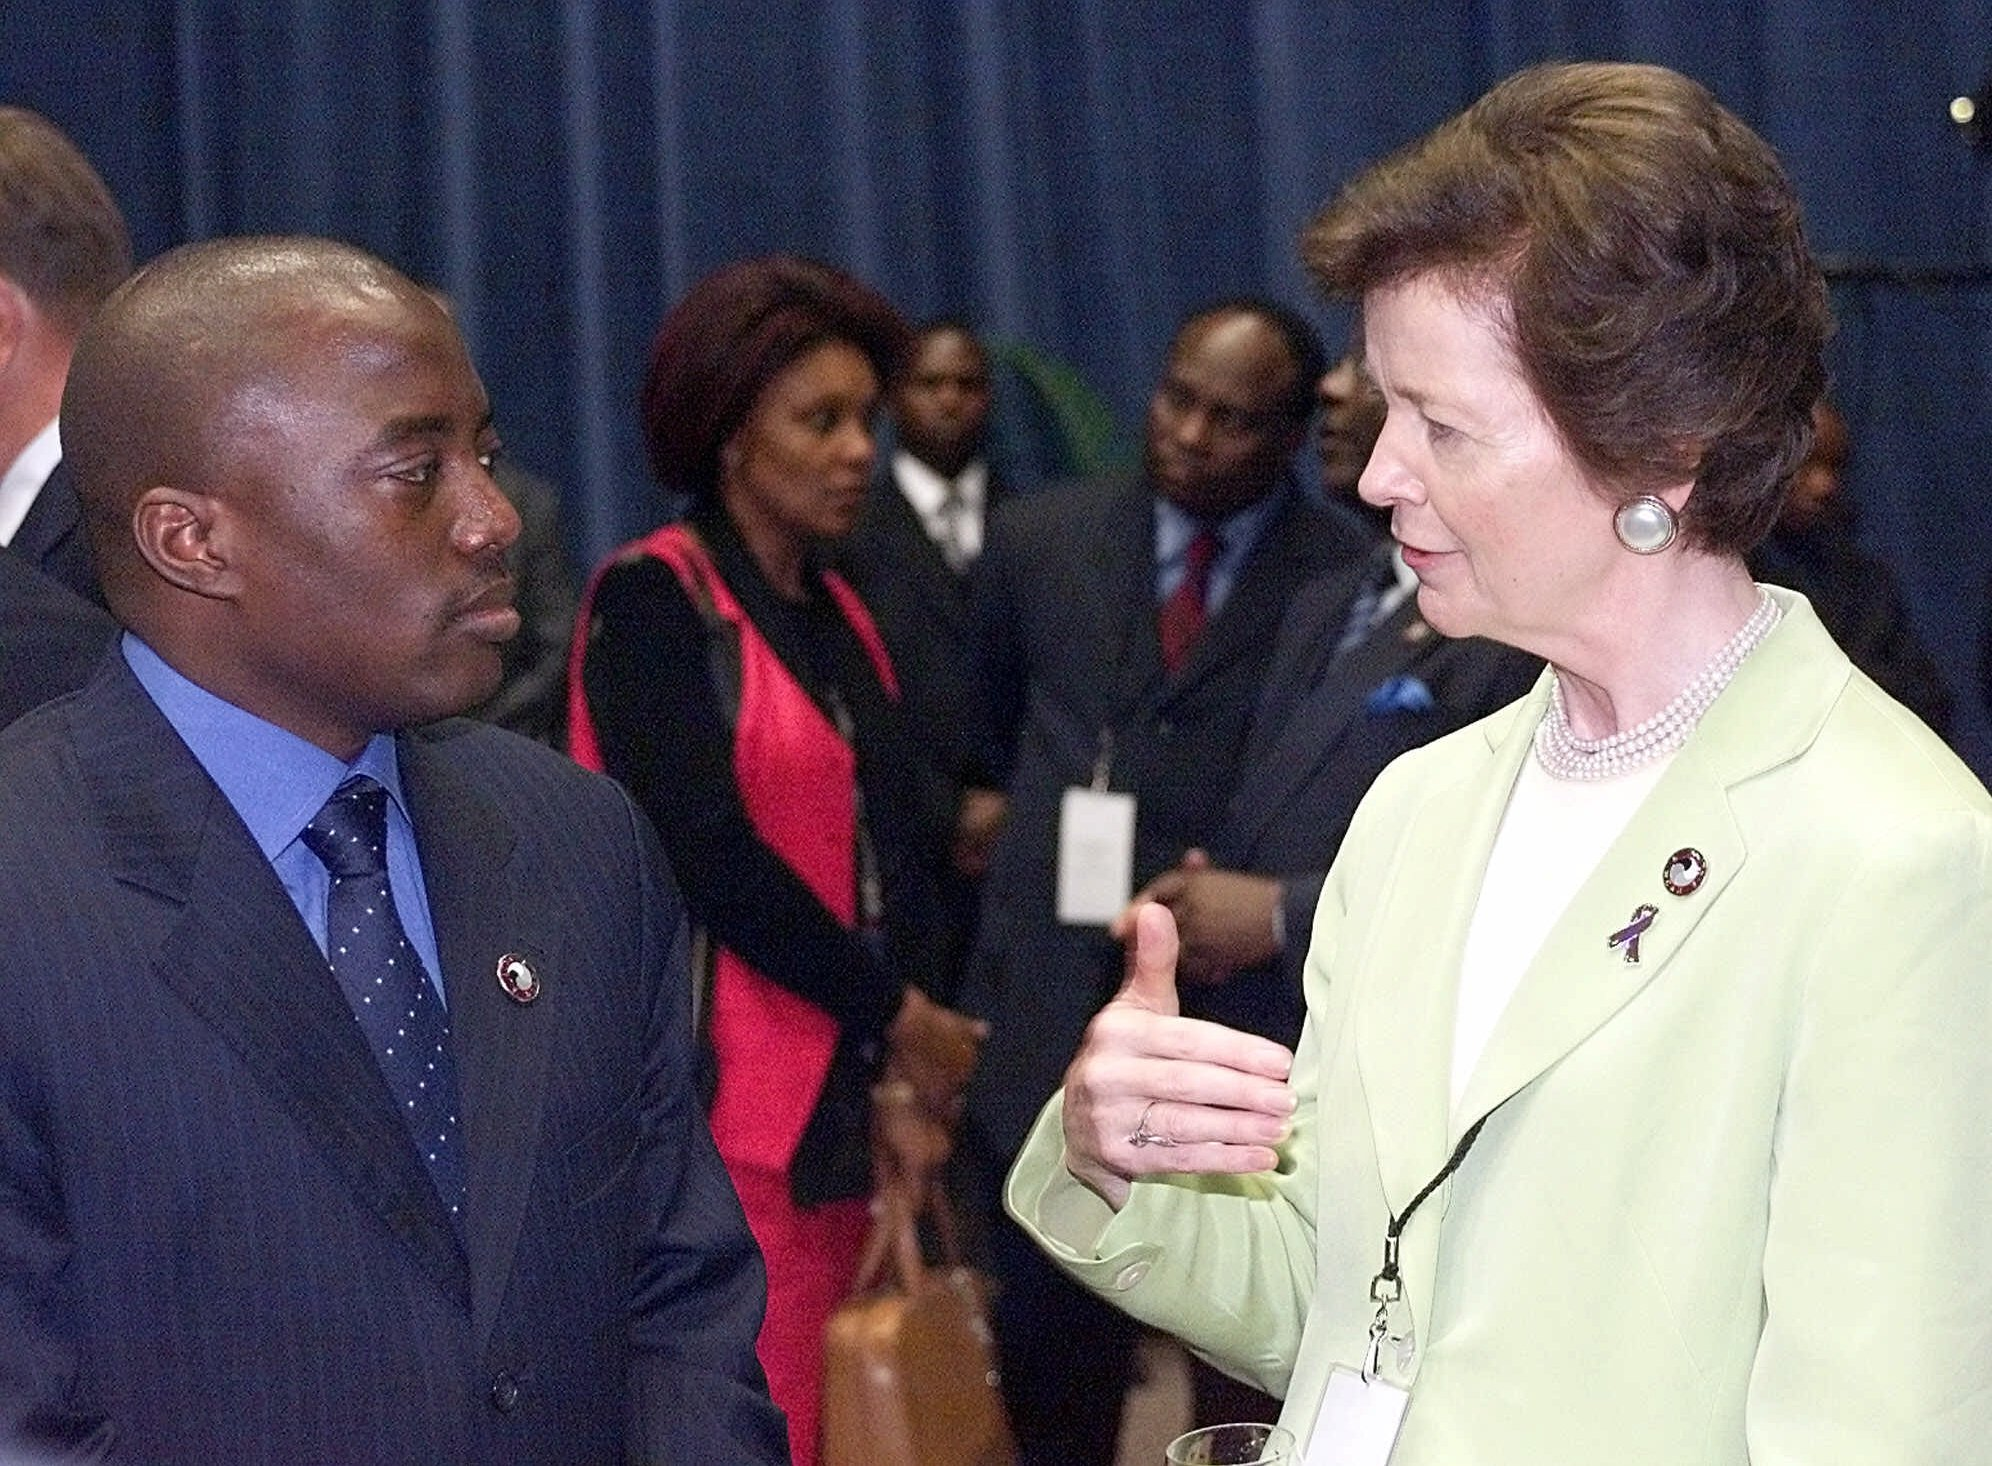 Mary Robinson's Next Steps to Help End Congo's Deadly War